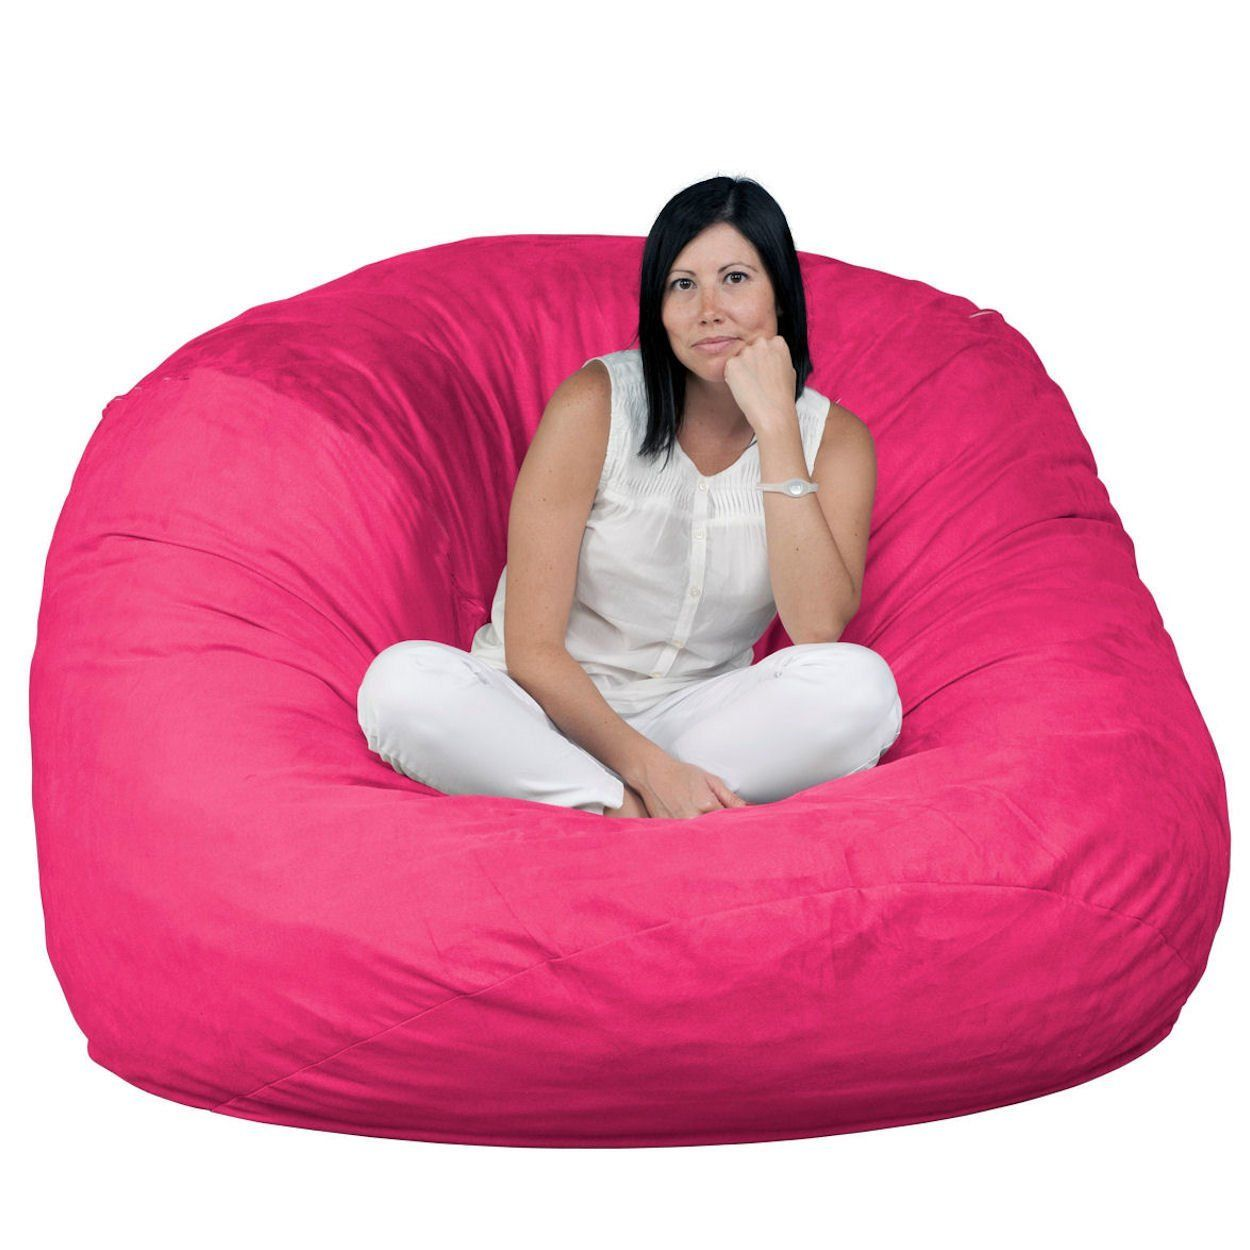 Amazon.com: Bean Bag Chair in multiple sizes and colors: Kitchen & Dining